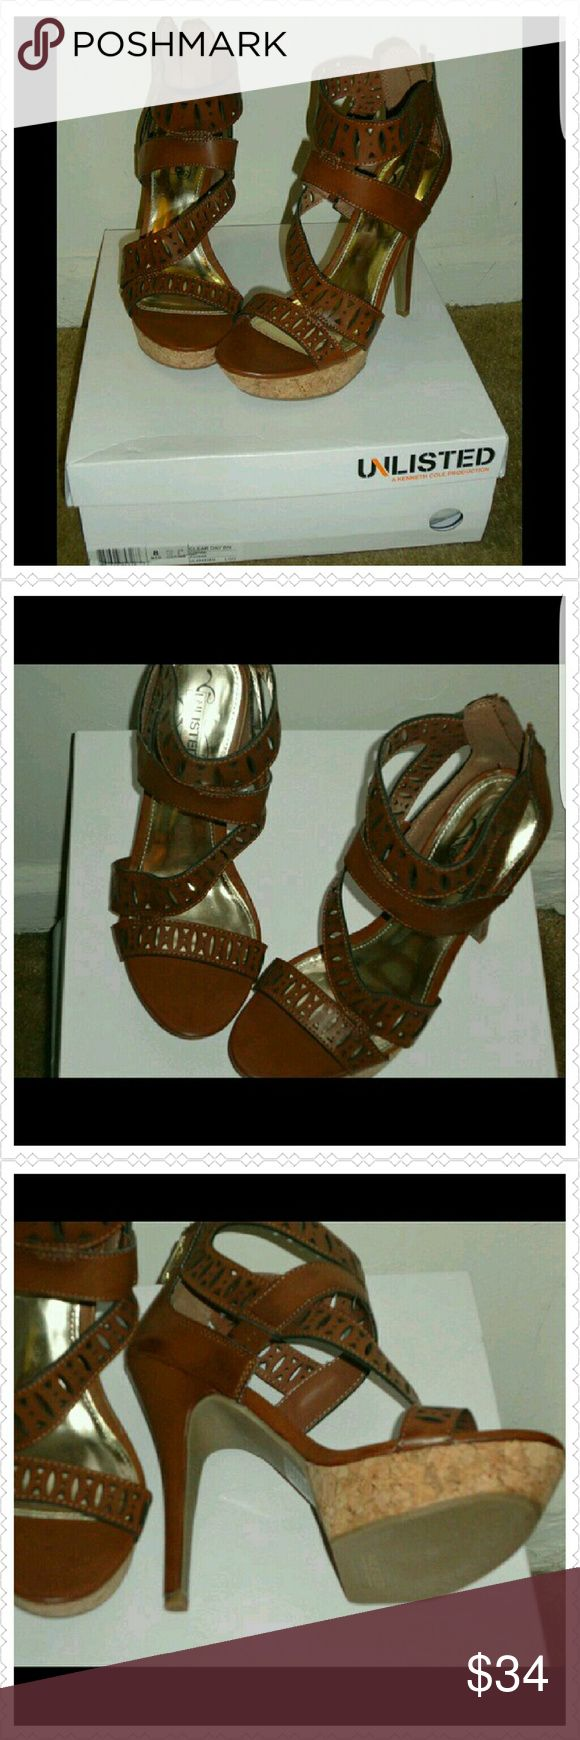 Platform Strap Sandals Super cute Platform Camel Sandals. Never worn with Box. Thank you and Happy Poshing!!! NWOT Unlisted by Kenneth Cole Shoes Sandals